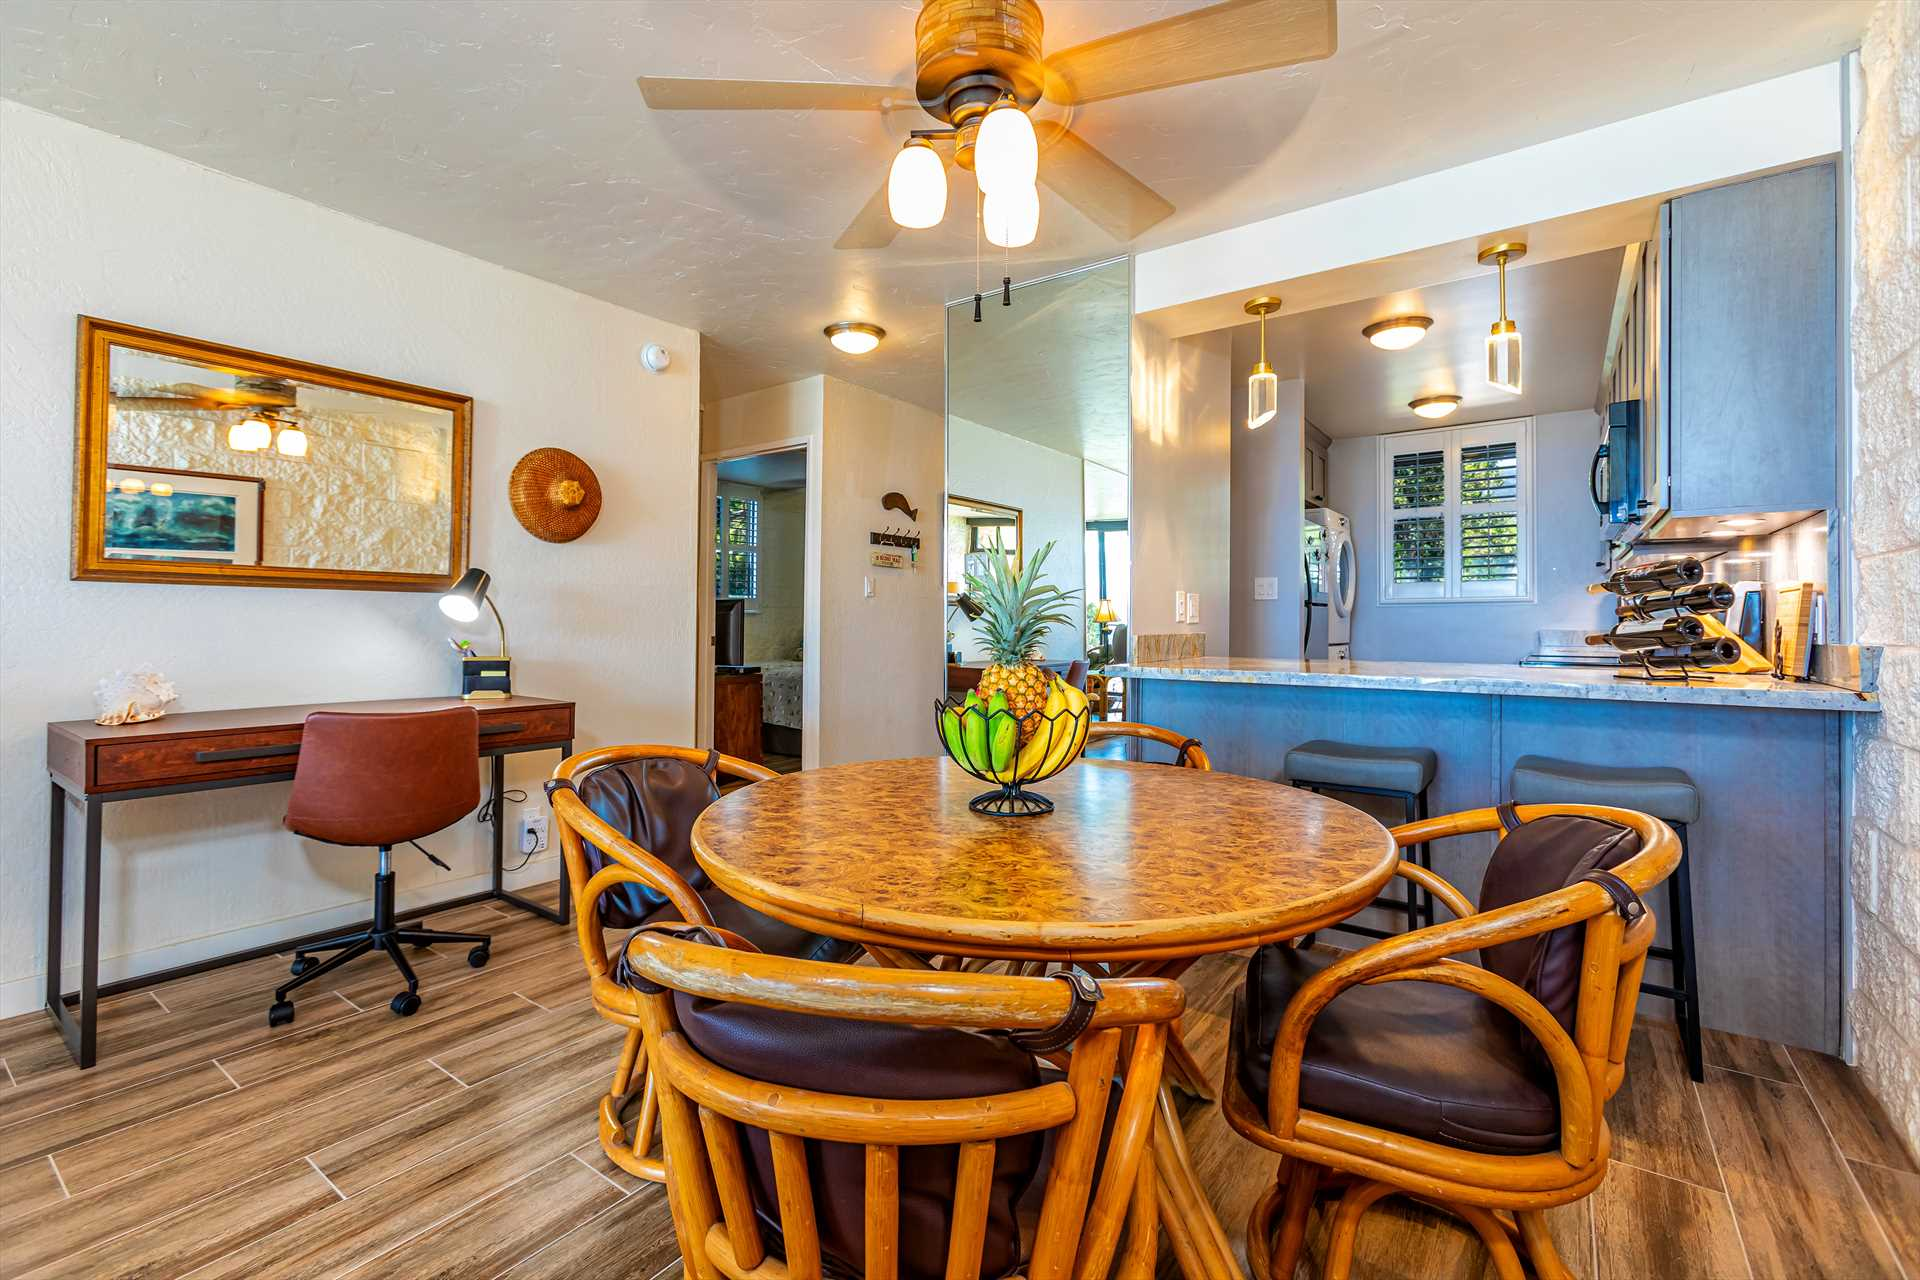 Dining area with kitchen counter pass thru. Also a desk and